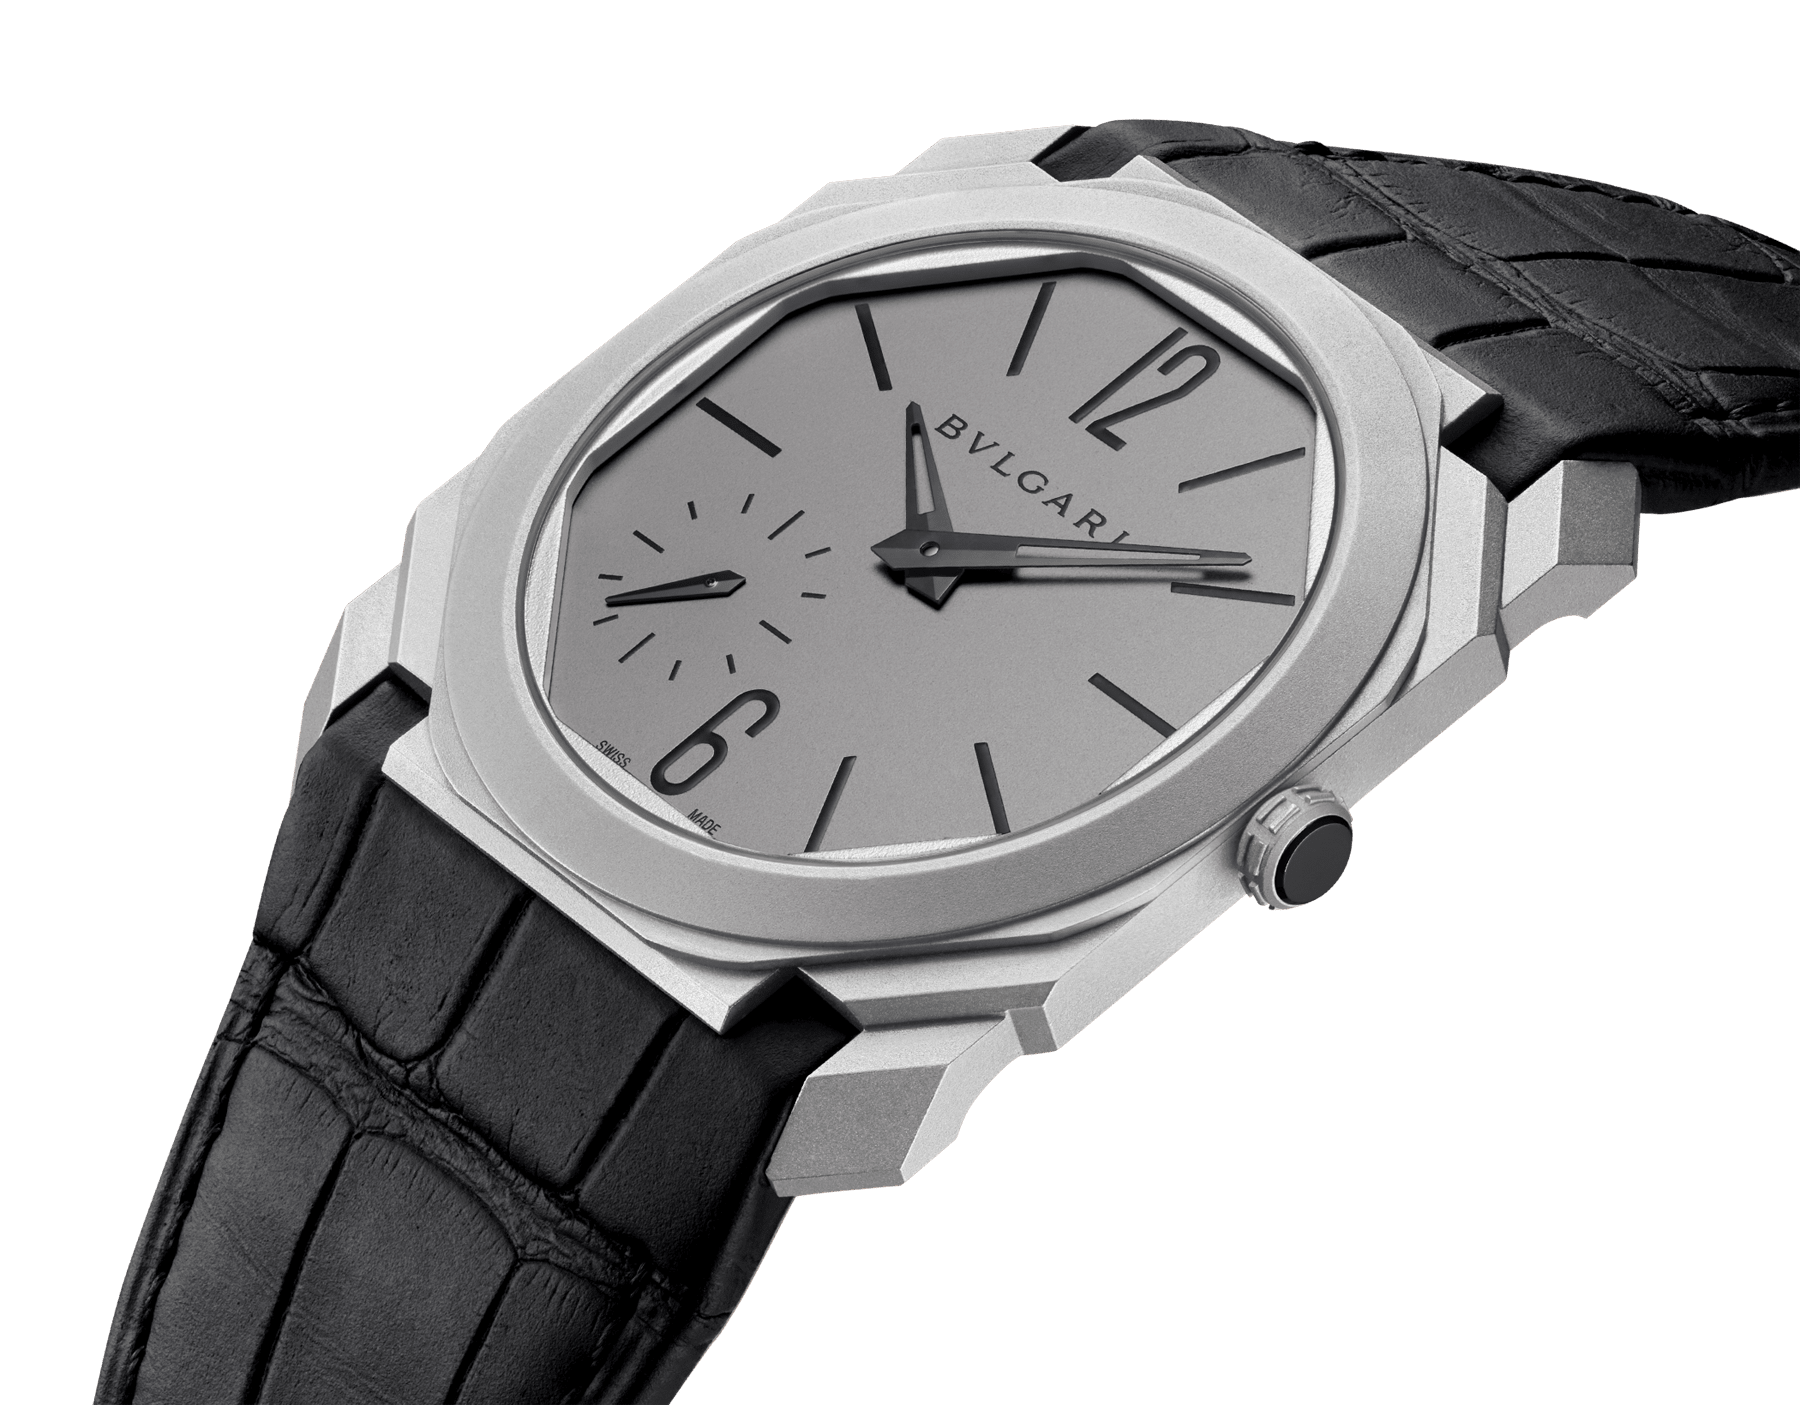 Octo Finissimo Automatic watch with extra thin mechanical manufacture movement, automatic winding and small seconds, titanium case and dial, black alligator bracelet. 102711 image 2